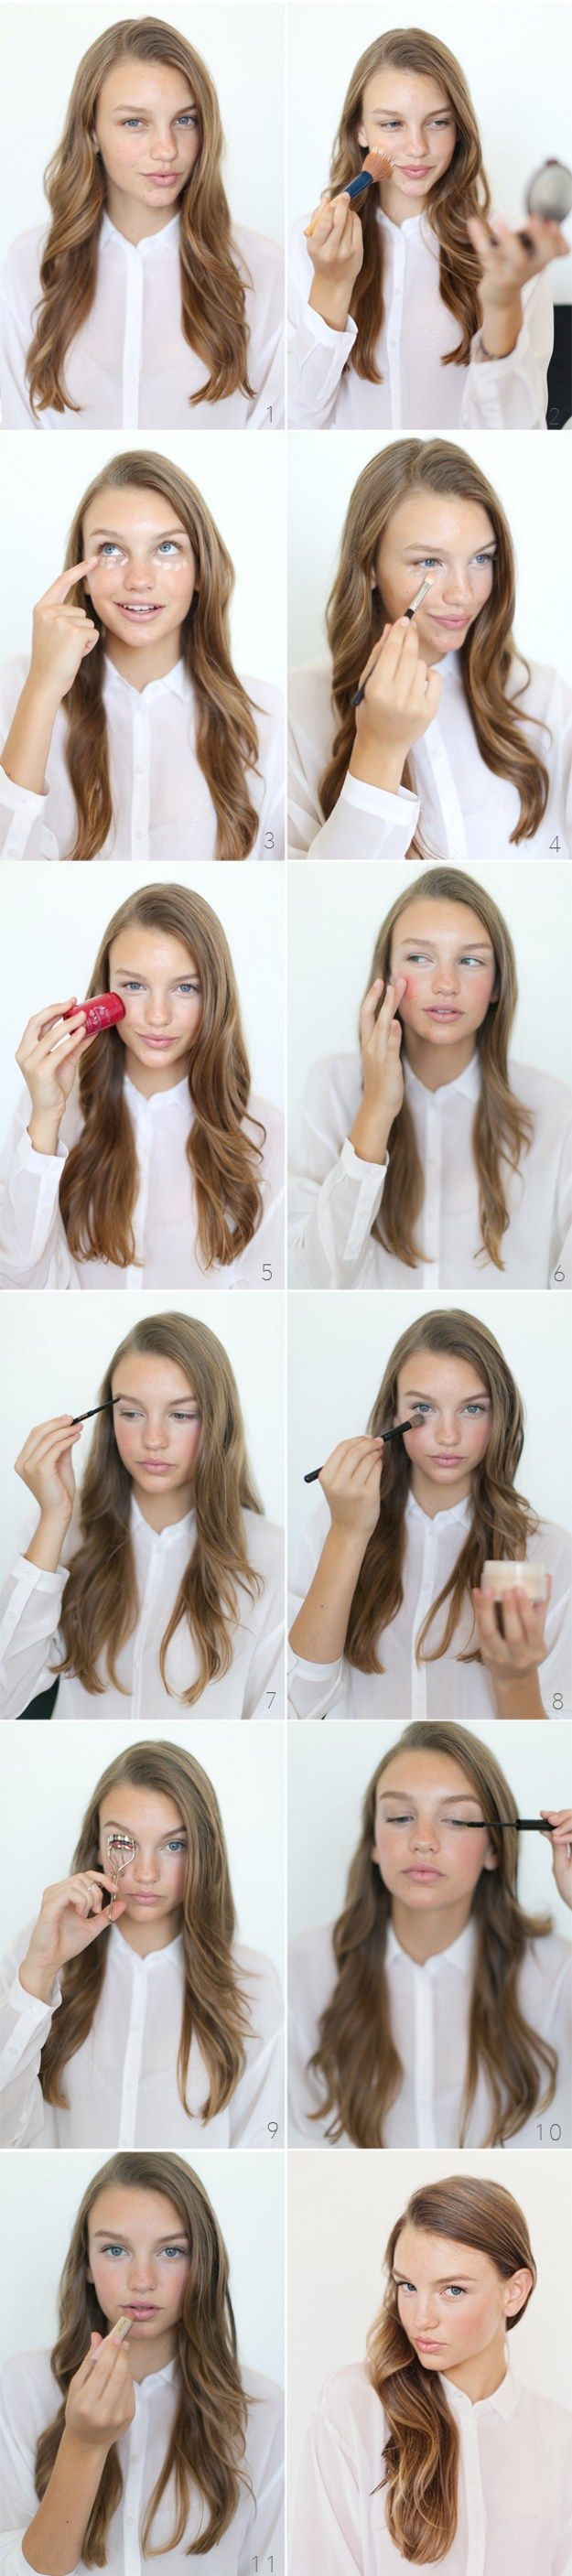 How to Do Easy Makeup for Work | Natural Look by Makeup Tutorials at…